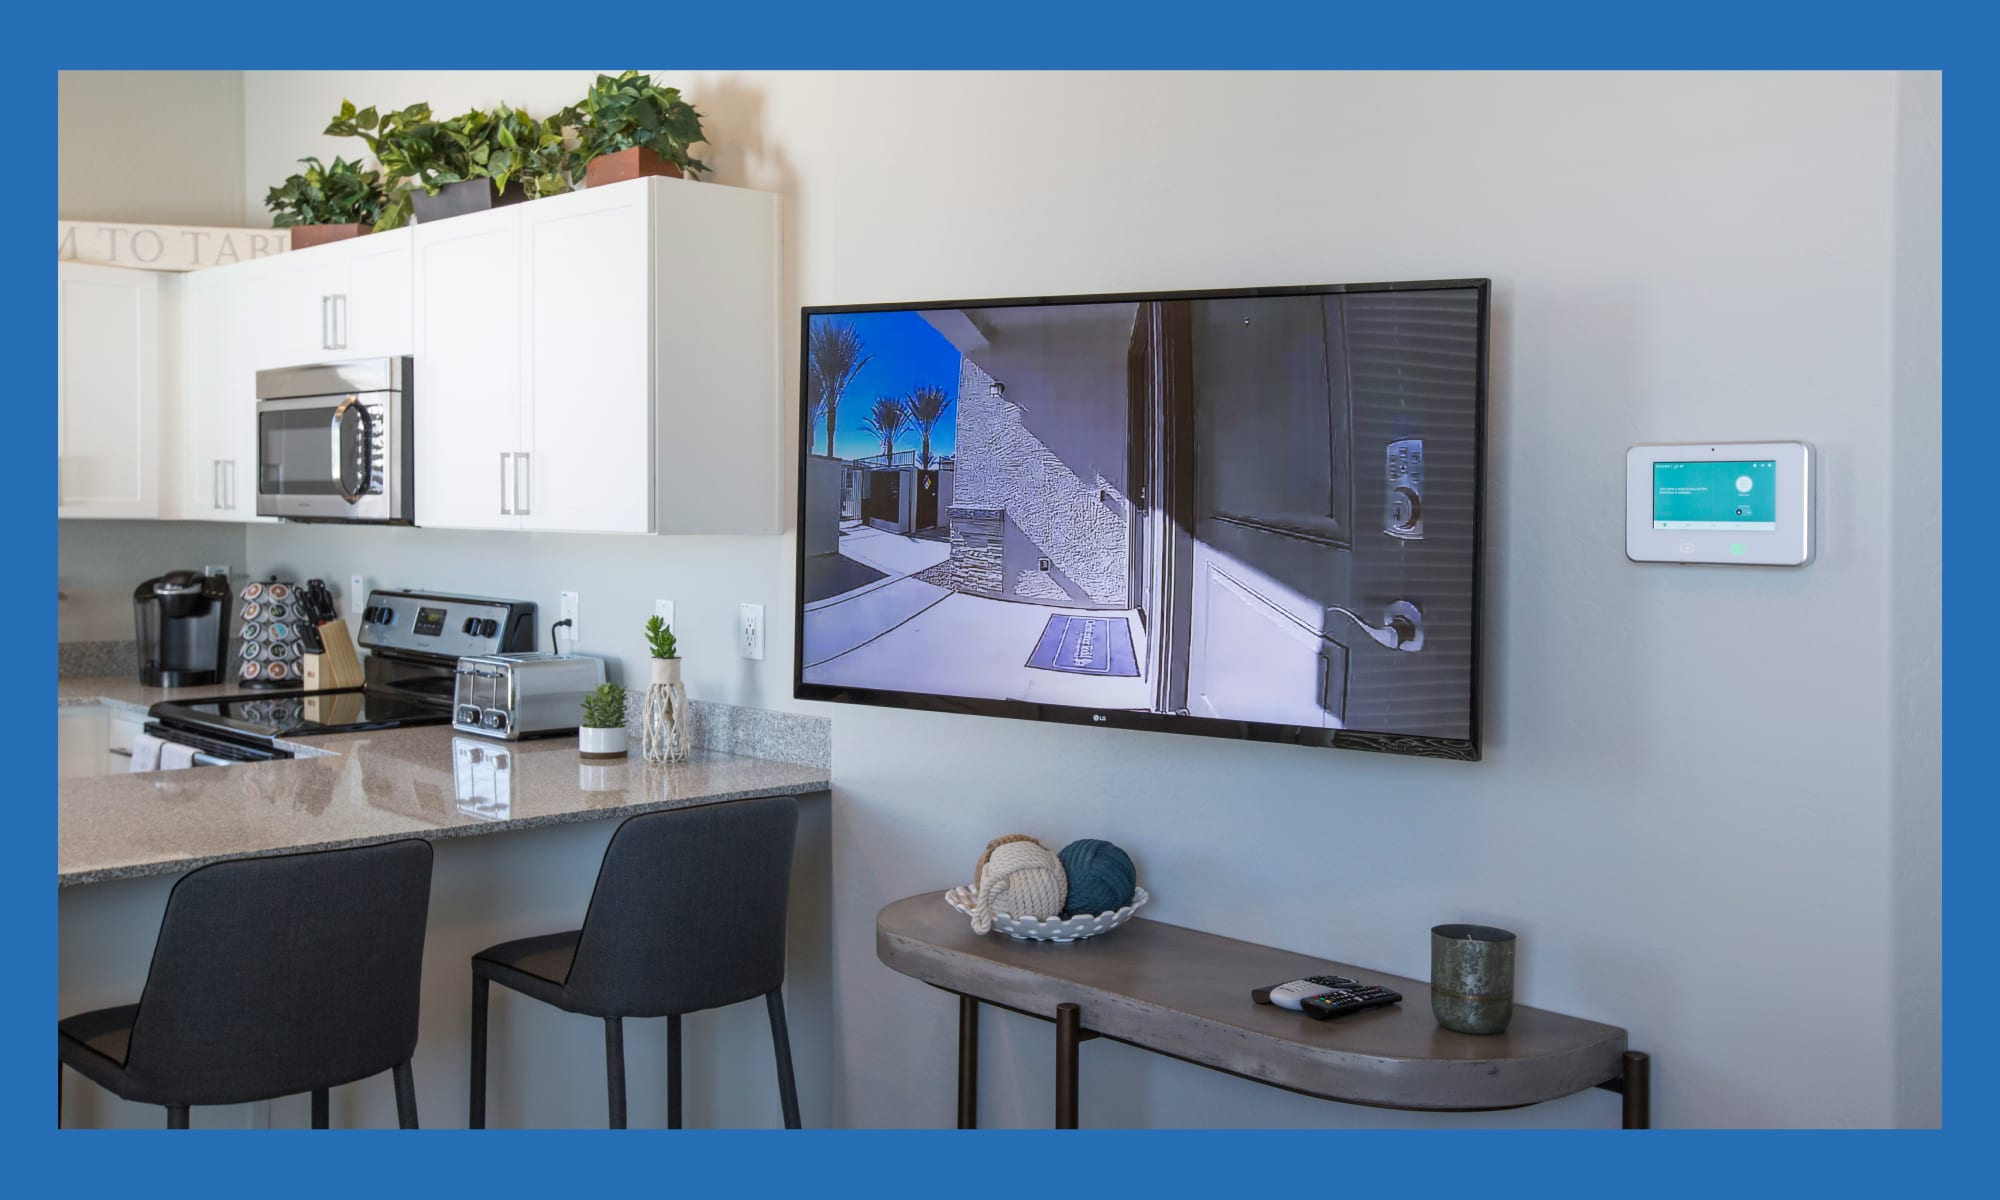 Partial view of the kitchen in the open-concept living space of a model home at Christopher Todd Communities At Marley Park in Surprise, Arizona